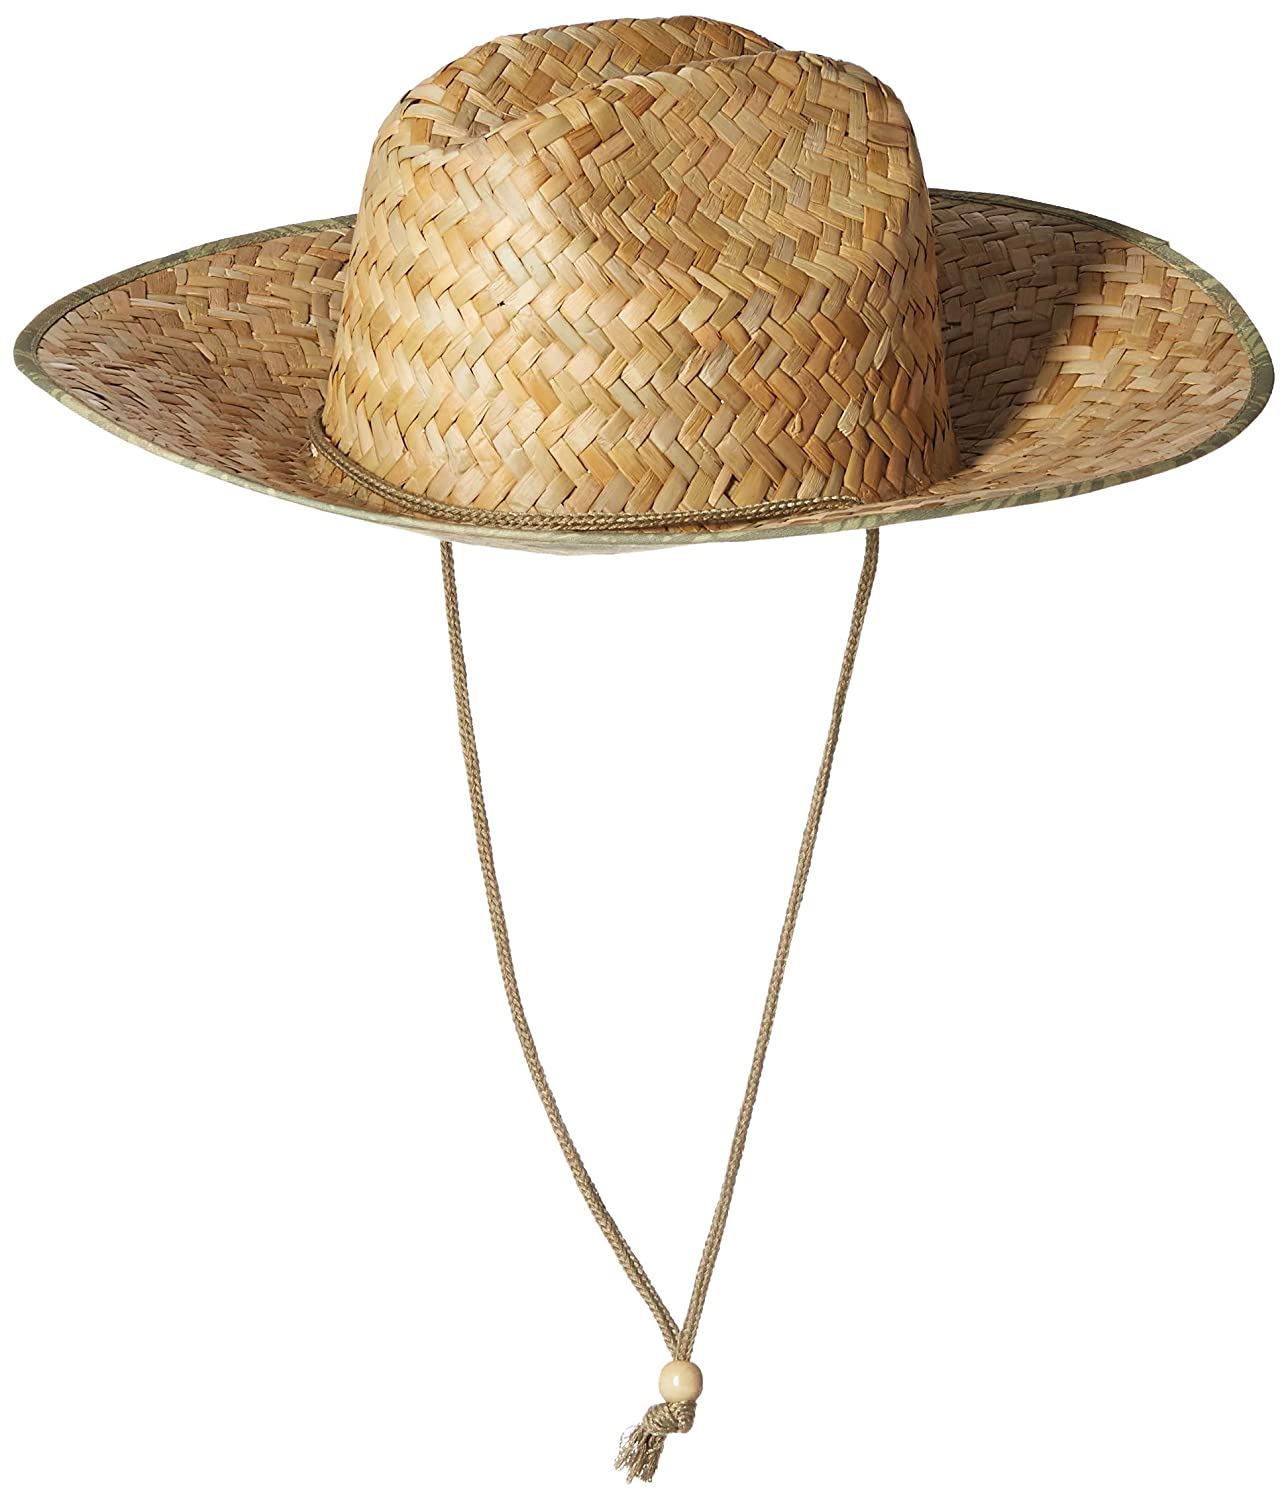 cffaef2e112f3 San Diego Hat Co. Men s Straw Lifeguard Adjustabel Chin Cord RSM582